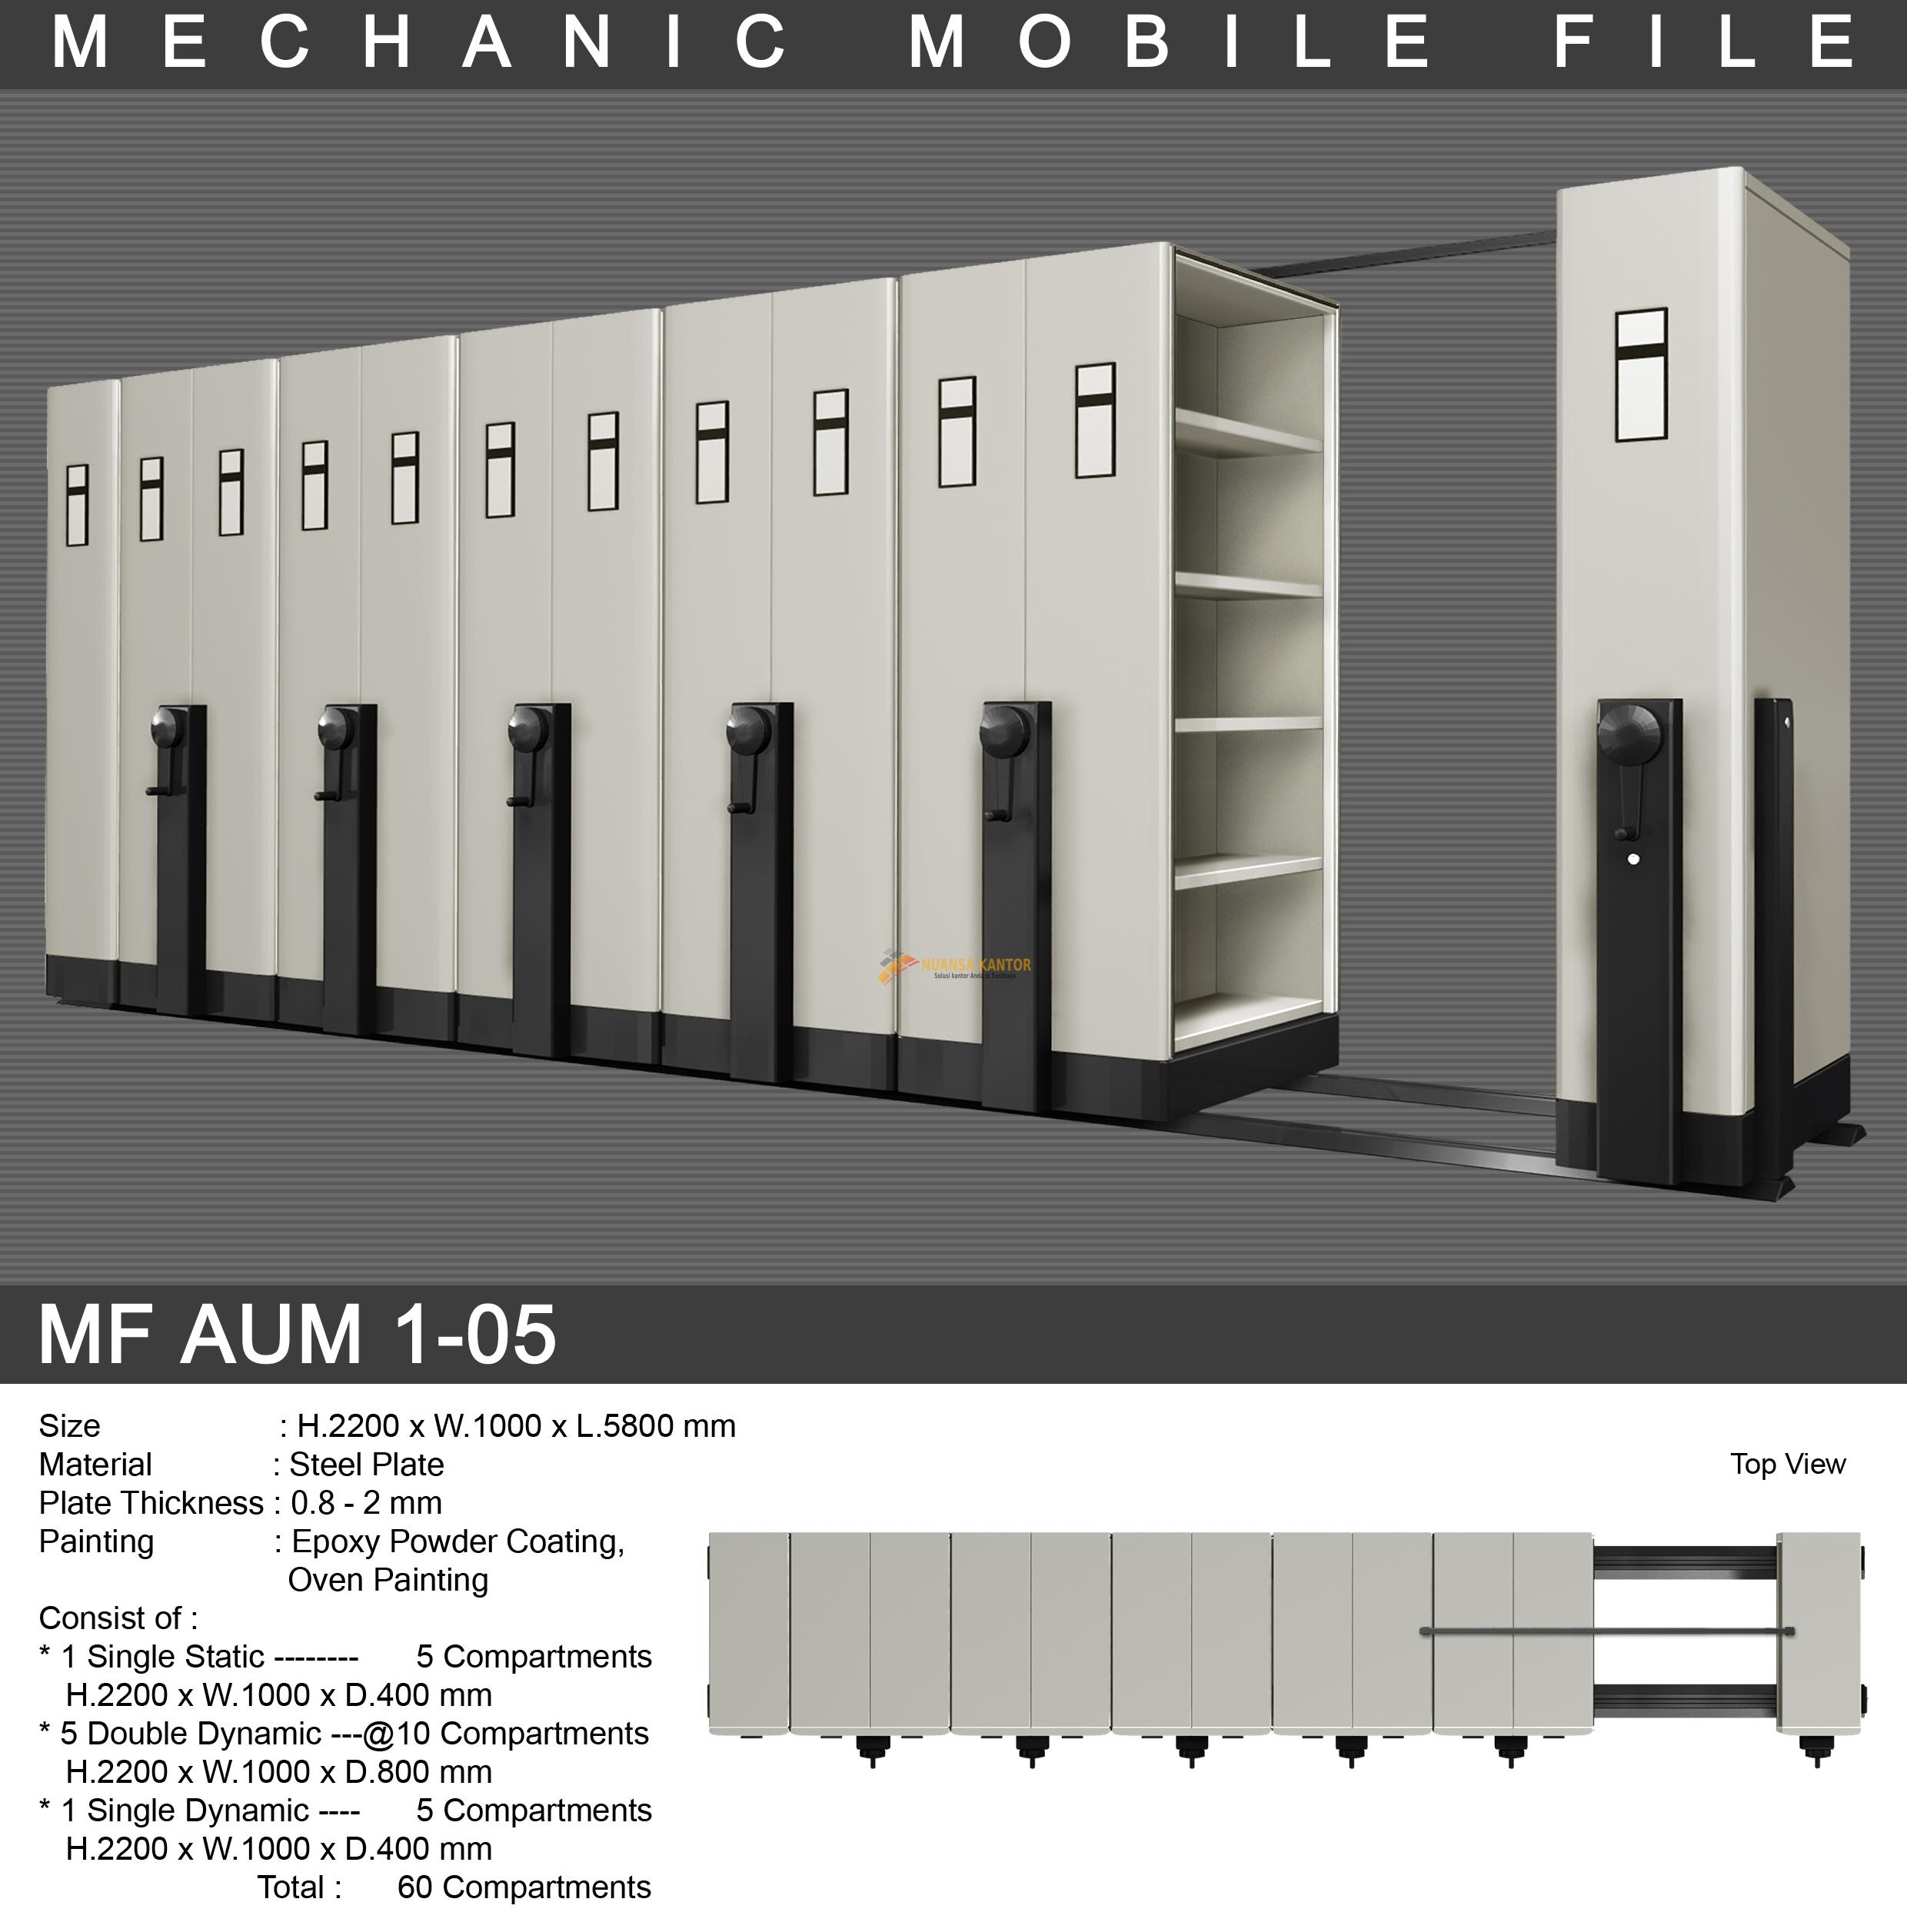 Mobile File Alba Mekanik MF AUM 1-05 ( 60 Compartments )